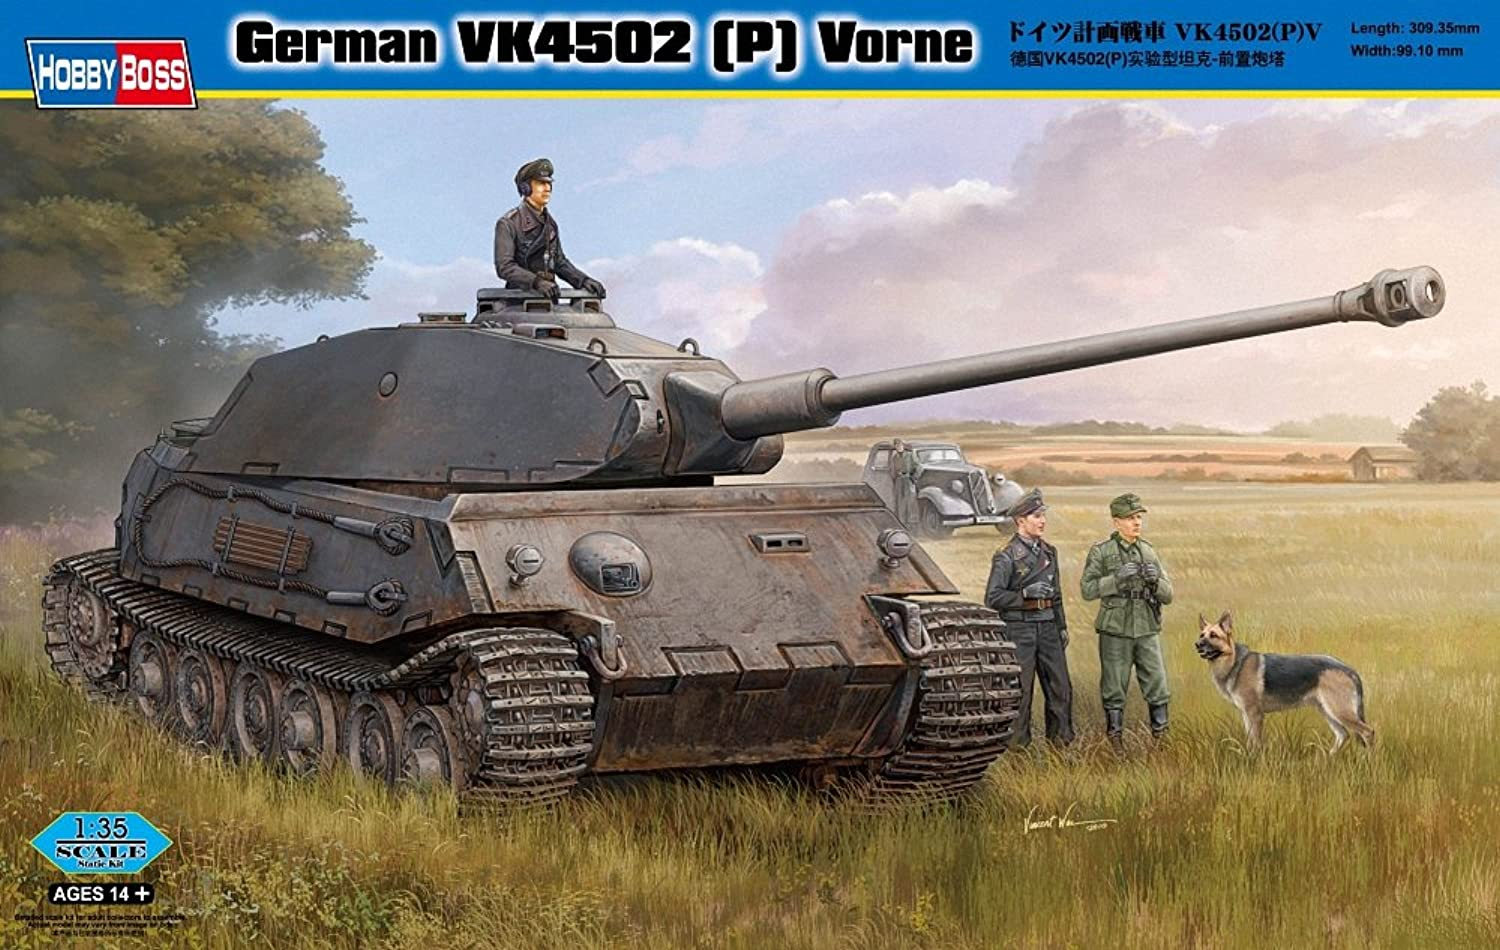 Hobby Boss German VK4502 (P) Vorne Vehicle Model Building Kit